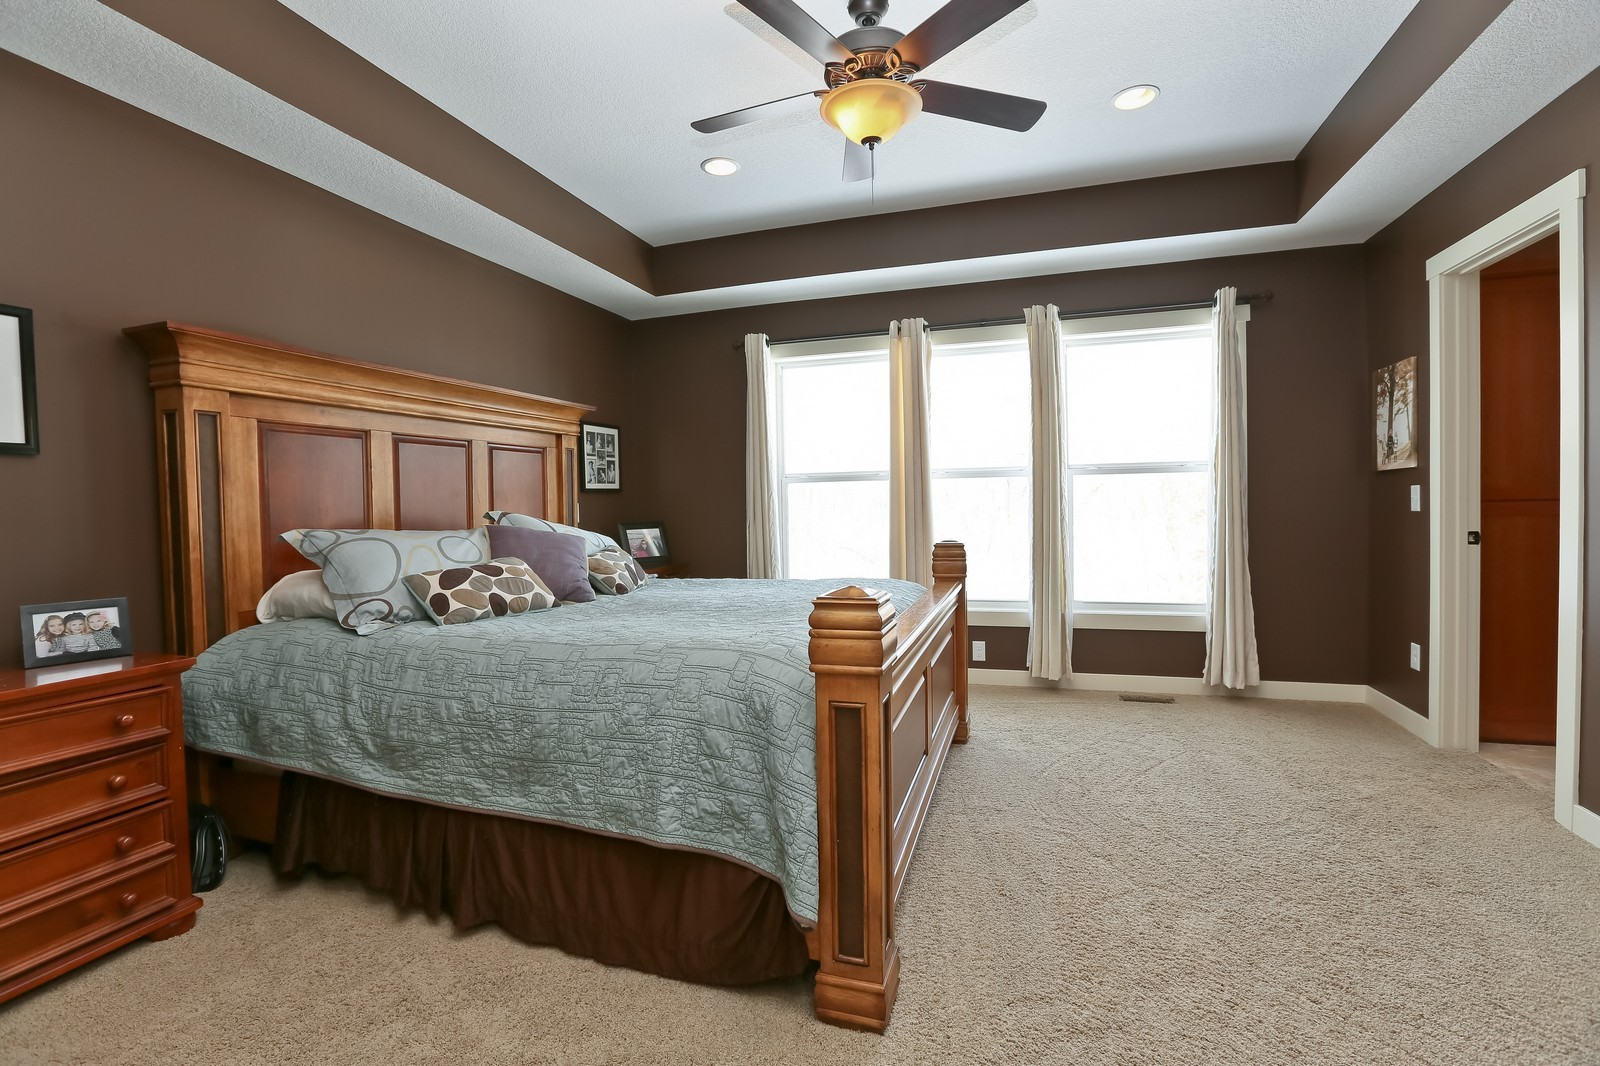 Real Estate Photography - 859 Fox Rd, Lino Lakes, MN, 55014 - Master Bedroom